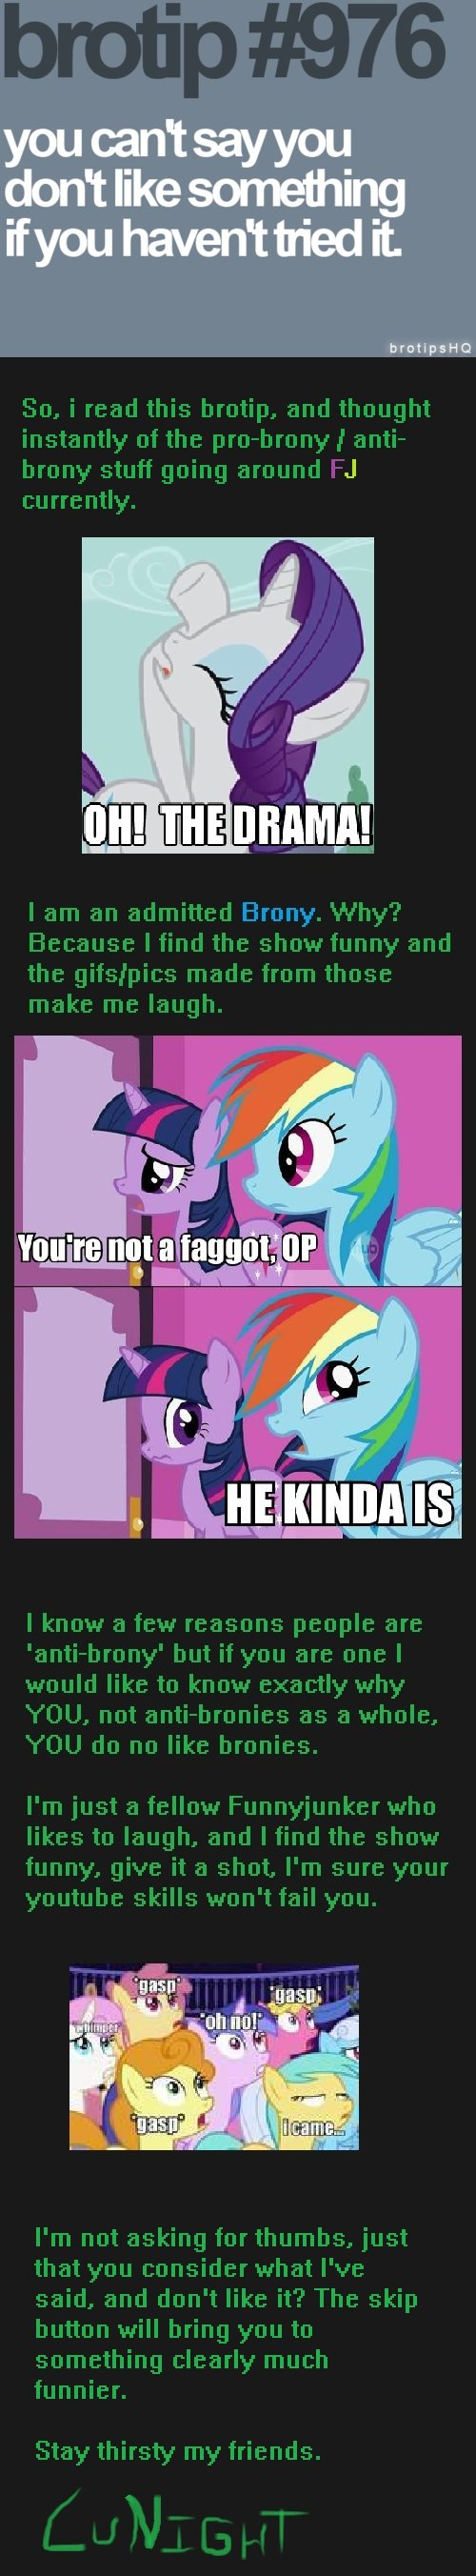 Bronies Brotip. . you cgn' thatyou_ don' t like something ifyou .. Personally disagree with that brotip in the first place. I mean, I've never tasted and i already know i'm not going to like it.